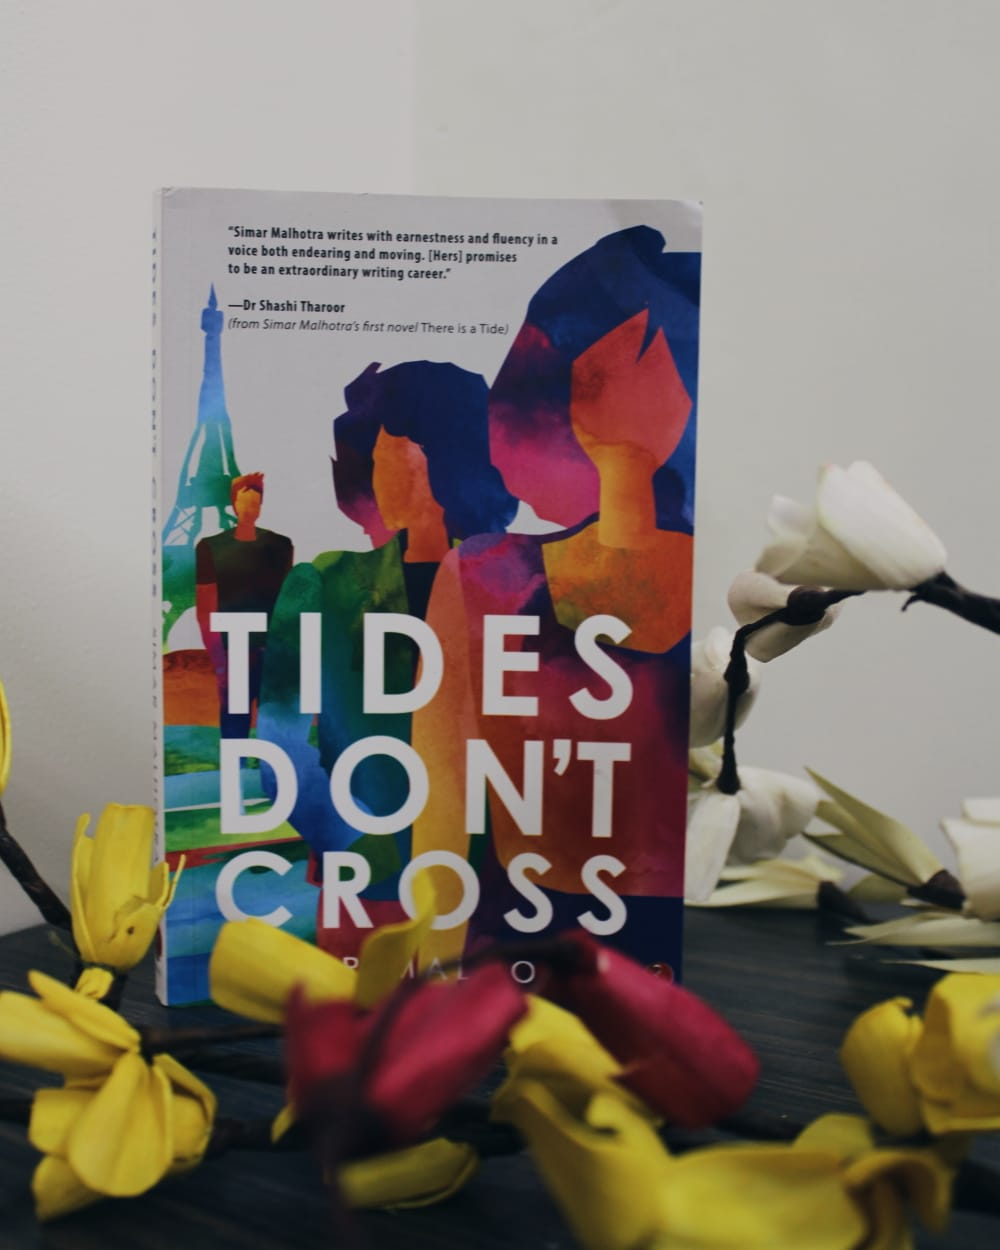 Tides Don't Cross by Simar Malhotra